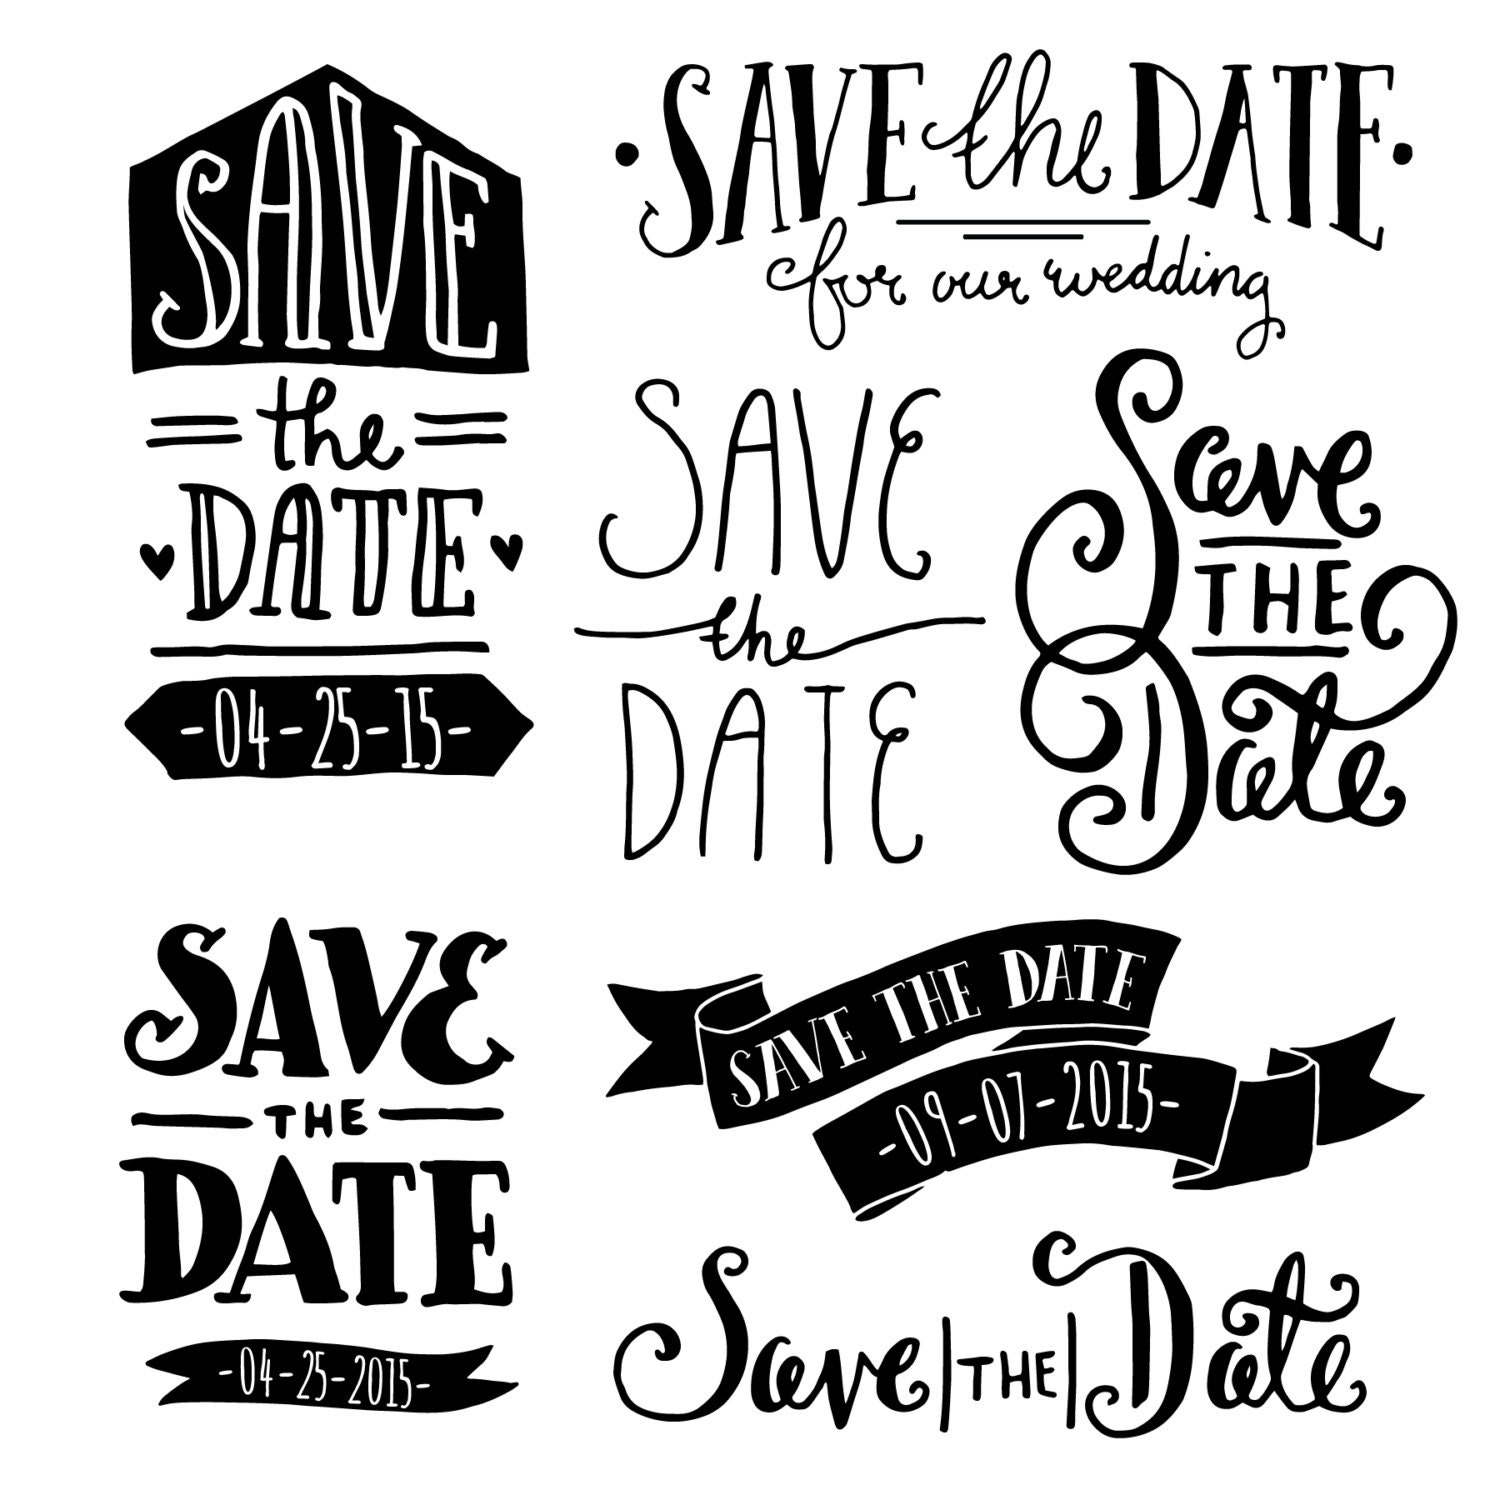 clip art save the date overlays 1 photoshop psd etsy